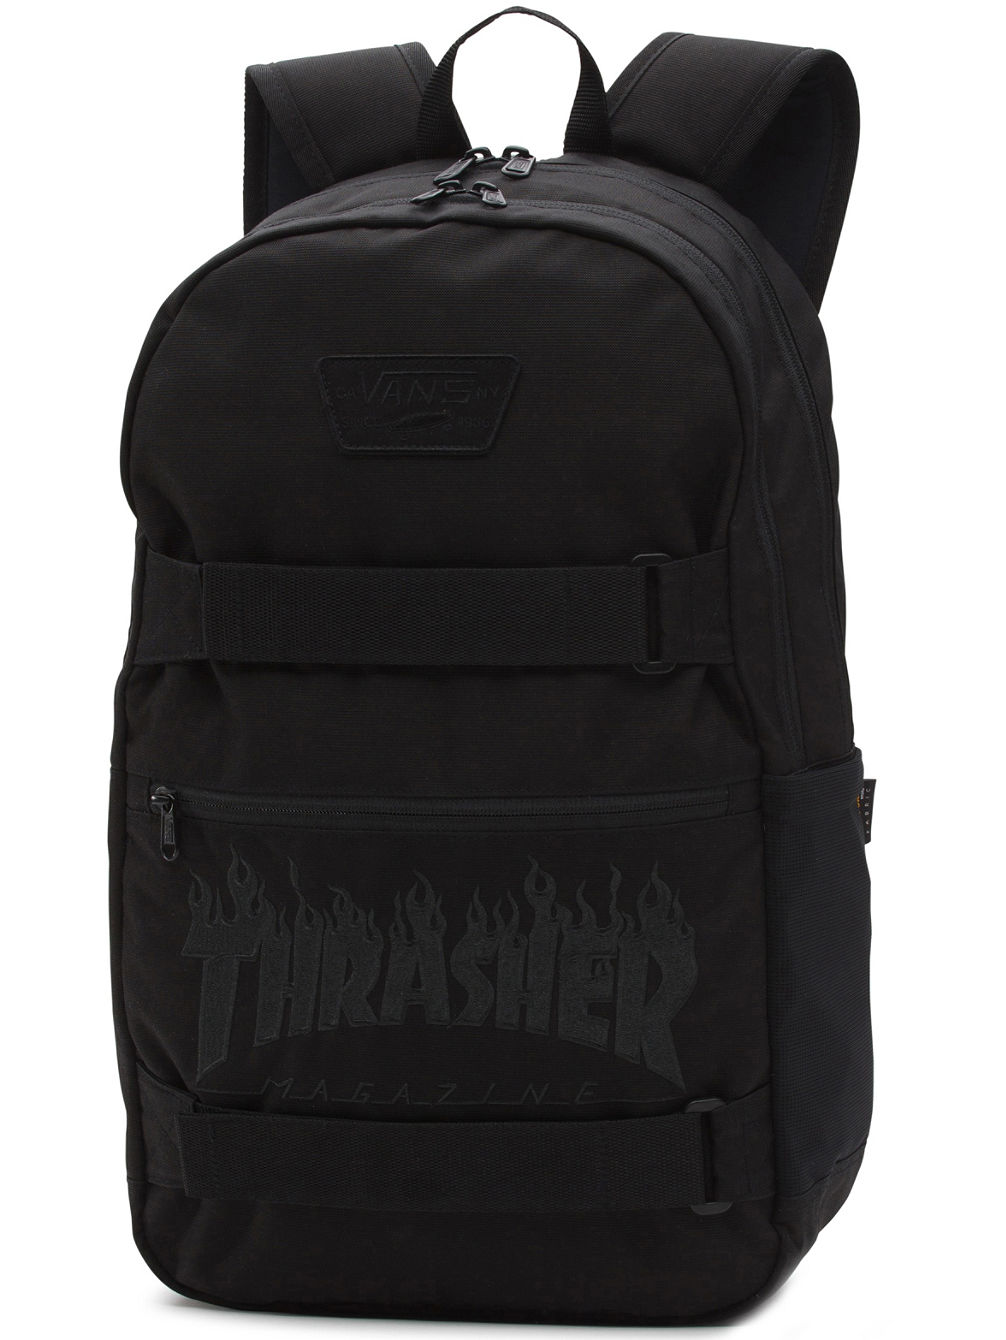 5c12aa9a60 Buy Vans Authentic III Skate Backpack online at blue-tomato.com